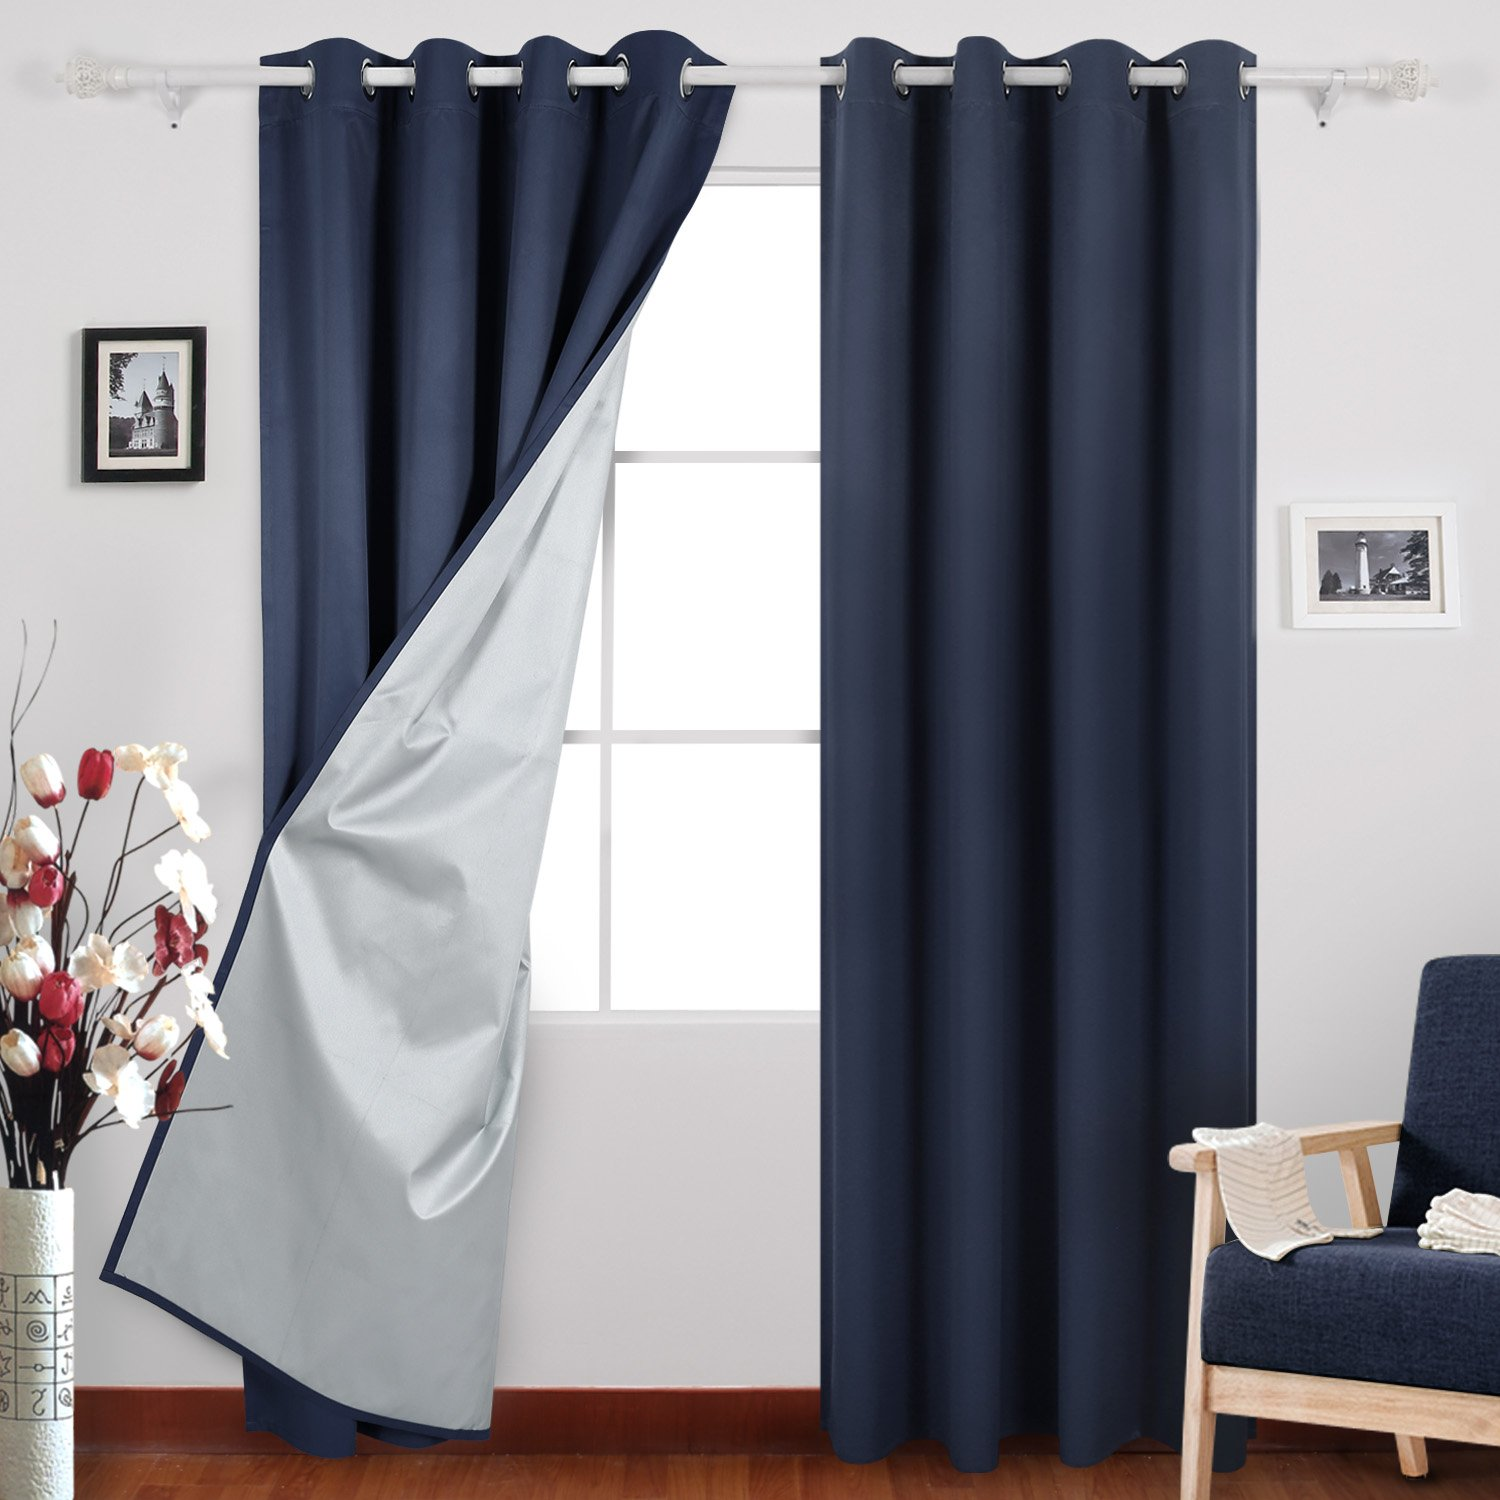 Get quotations · deconovo navy blue thermal insulated blackout curtains grommet curtains with silver coating for kids bedroom 52